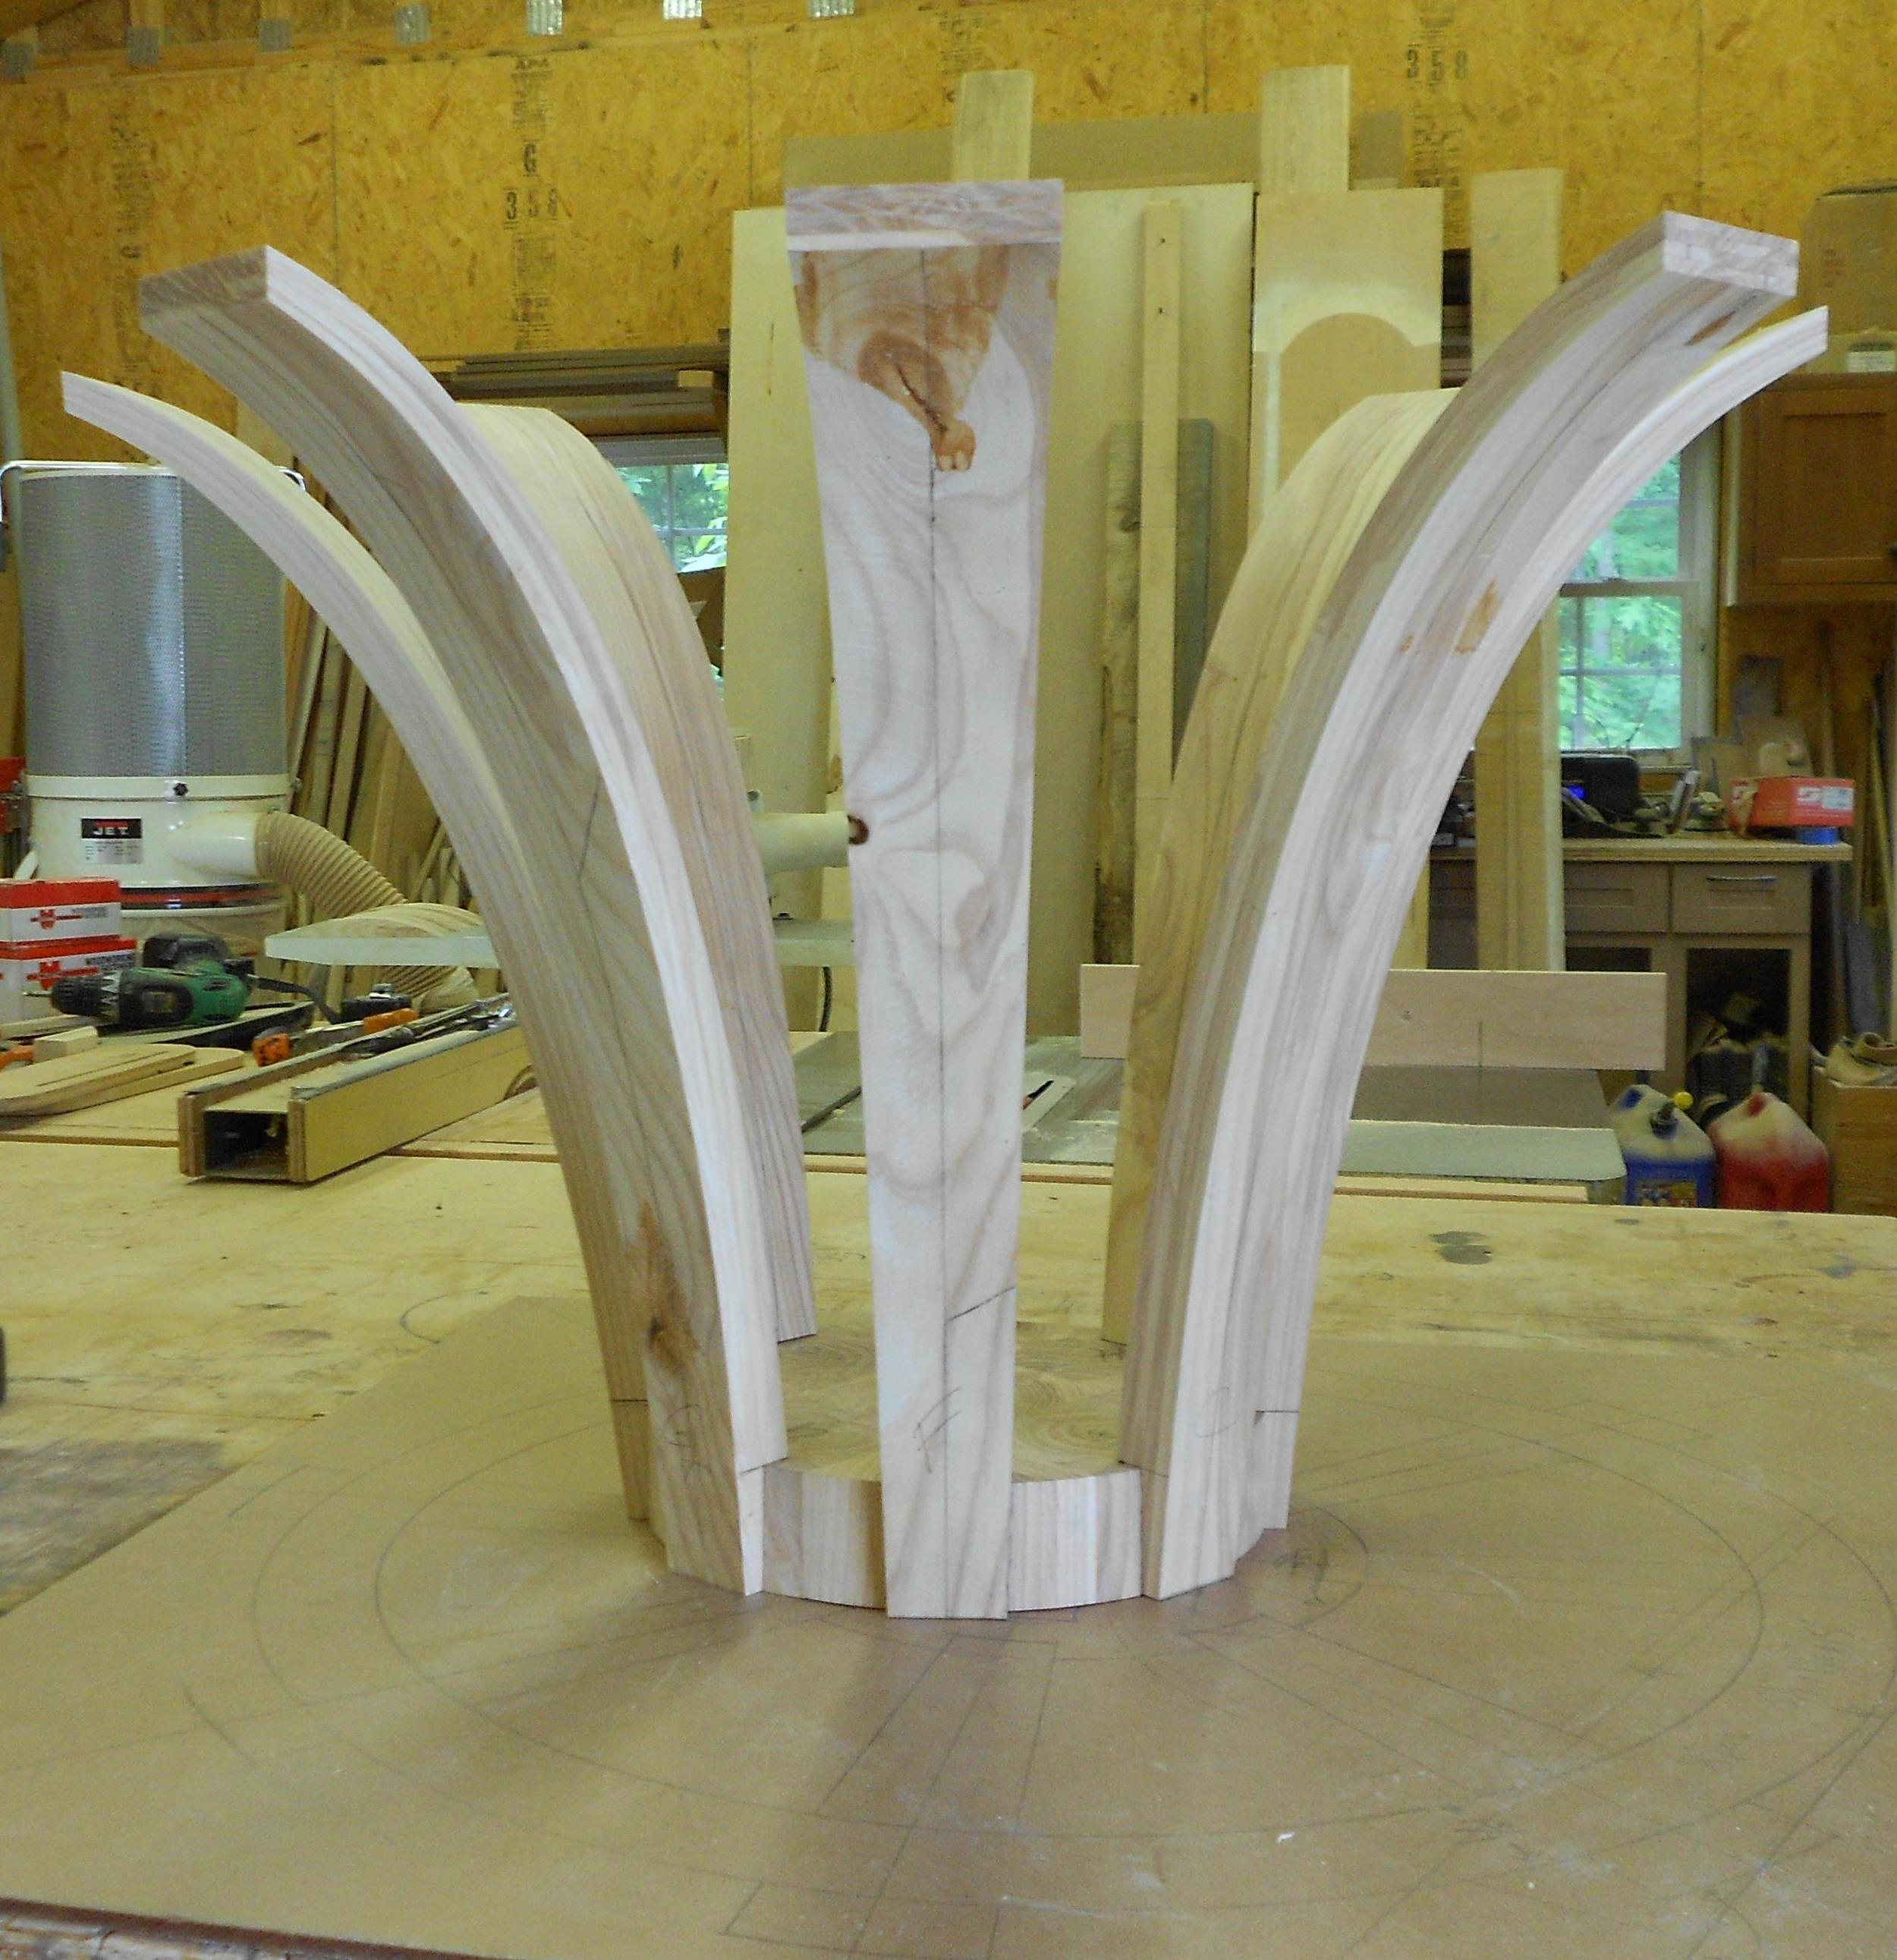 Brockport commission 9 joinery fit and ready to glue.jpg